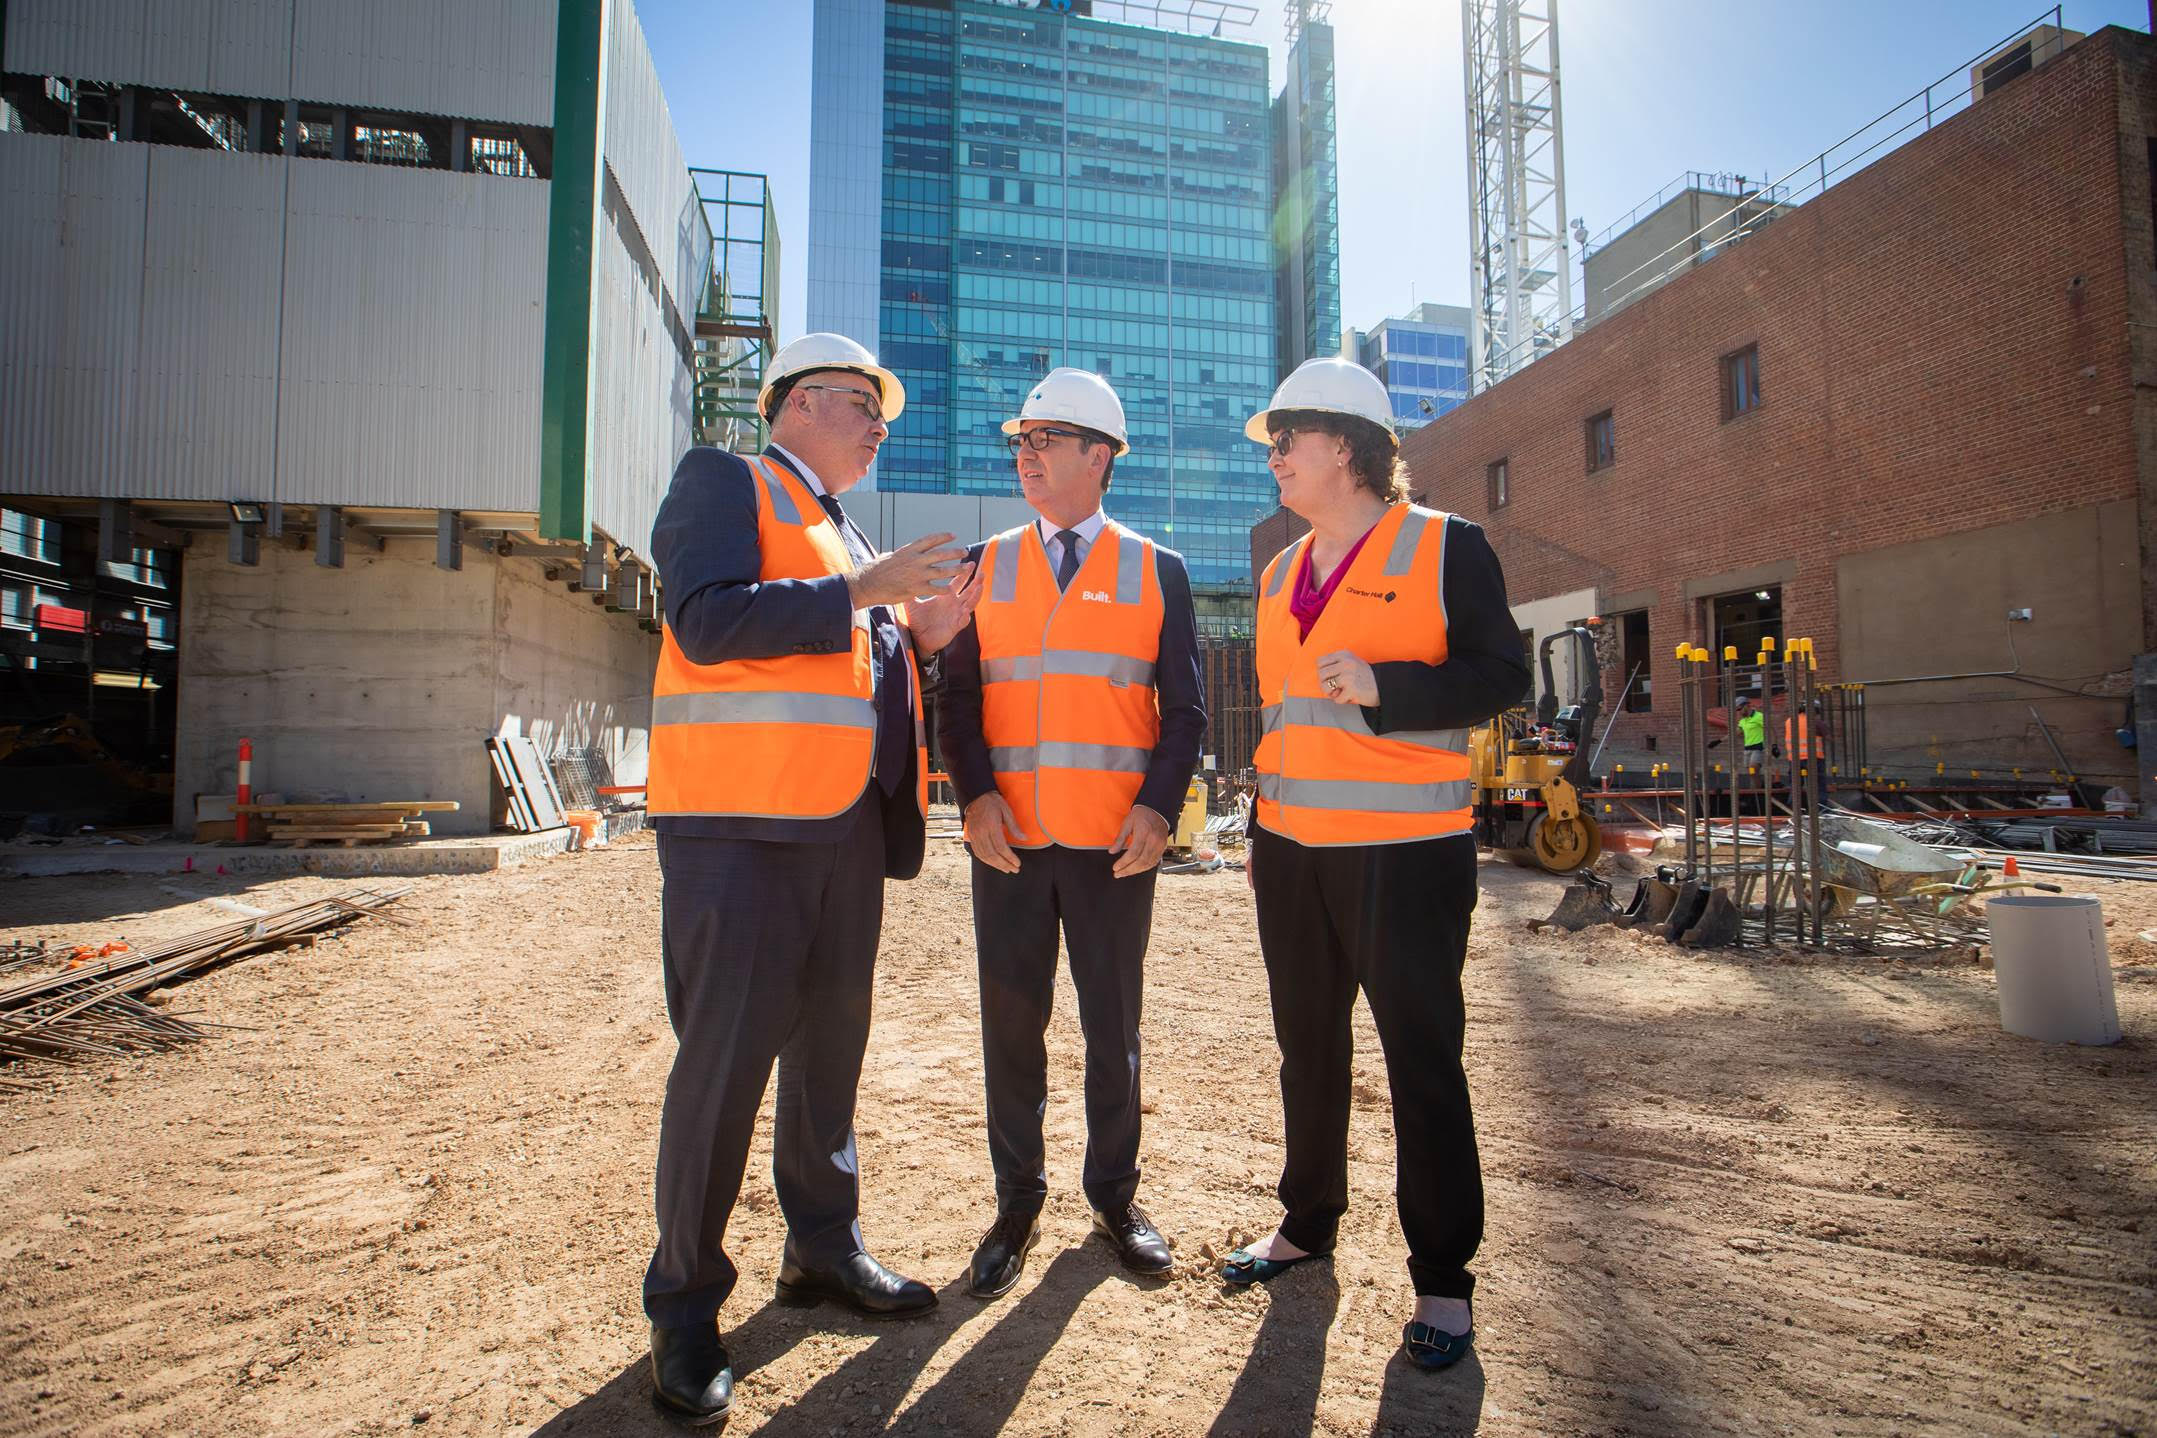 Charter Hall announced on Tuesday that mining giant BHP has committed to a 10-year lease at its GPO Exchange development. (Image: Andrew Borger, Head of Office Development Charter Hall; The Hon. Steven Marshall SA Premier; Jacqui McGill, Asset President Olympic Dam, BHP.